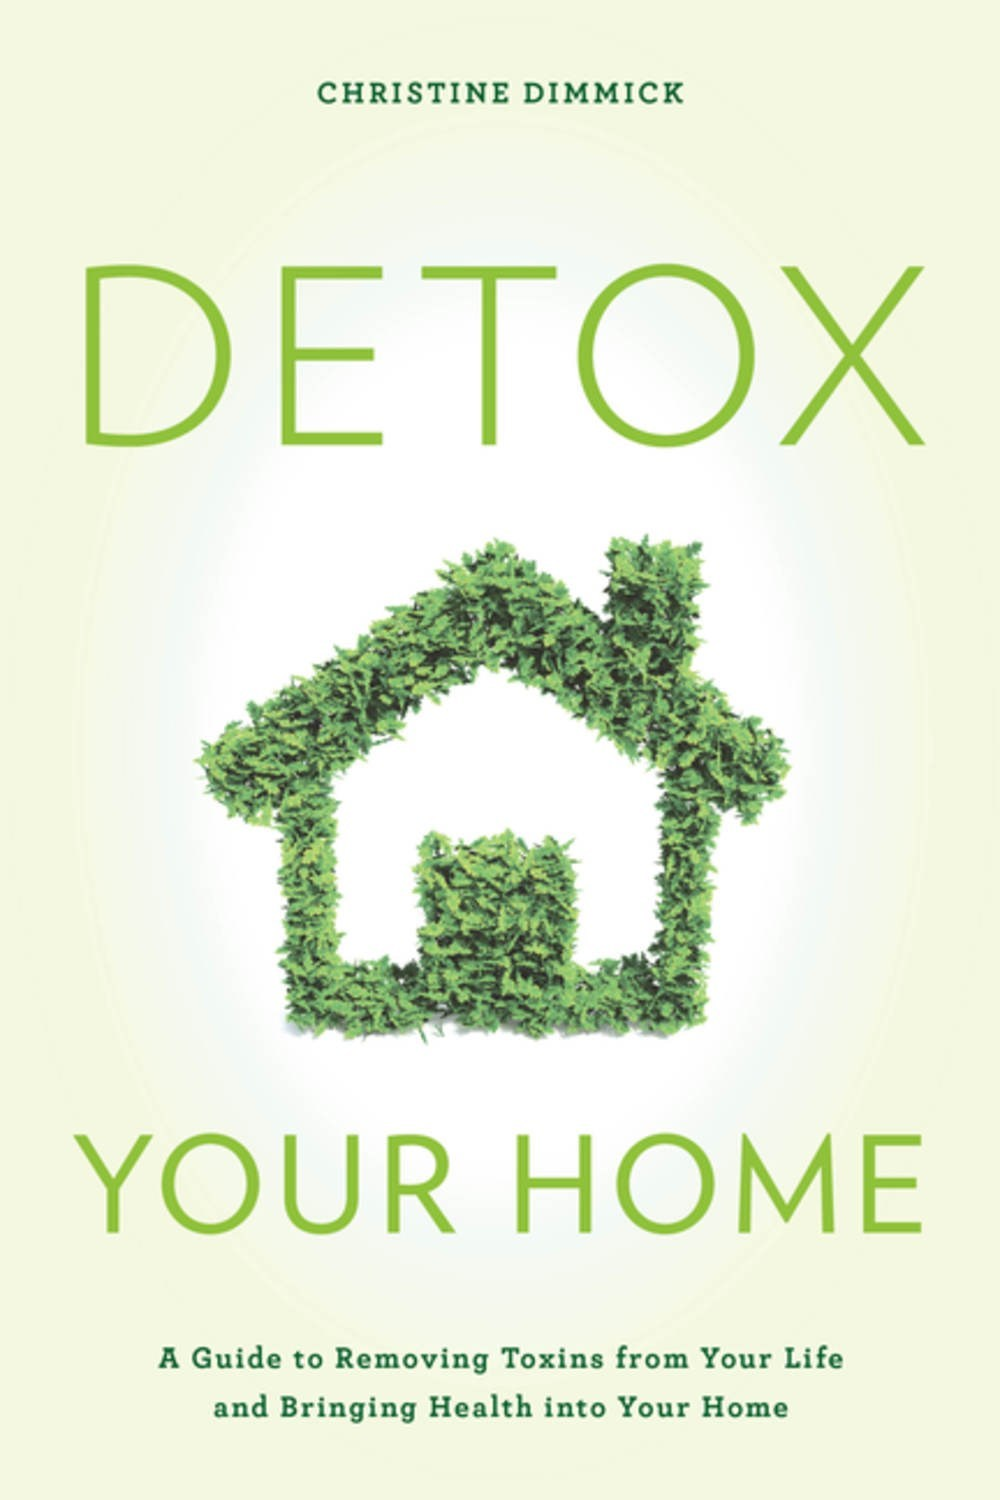 Detox Your Home A Guide to Removing Toxins from Your Life and Bringing Health into Your Home